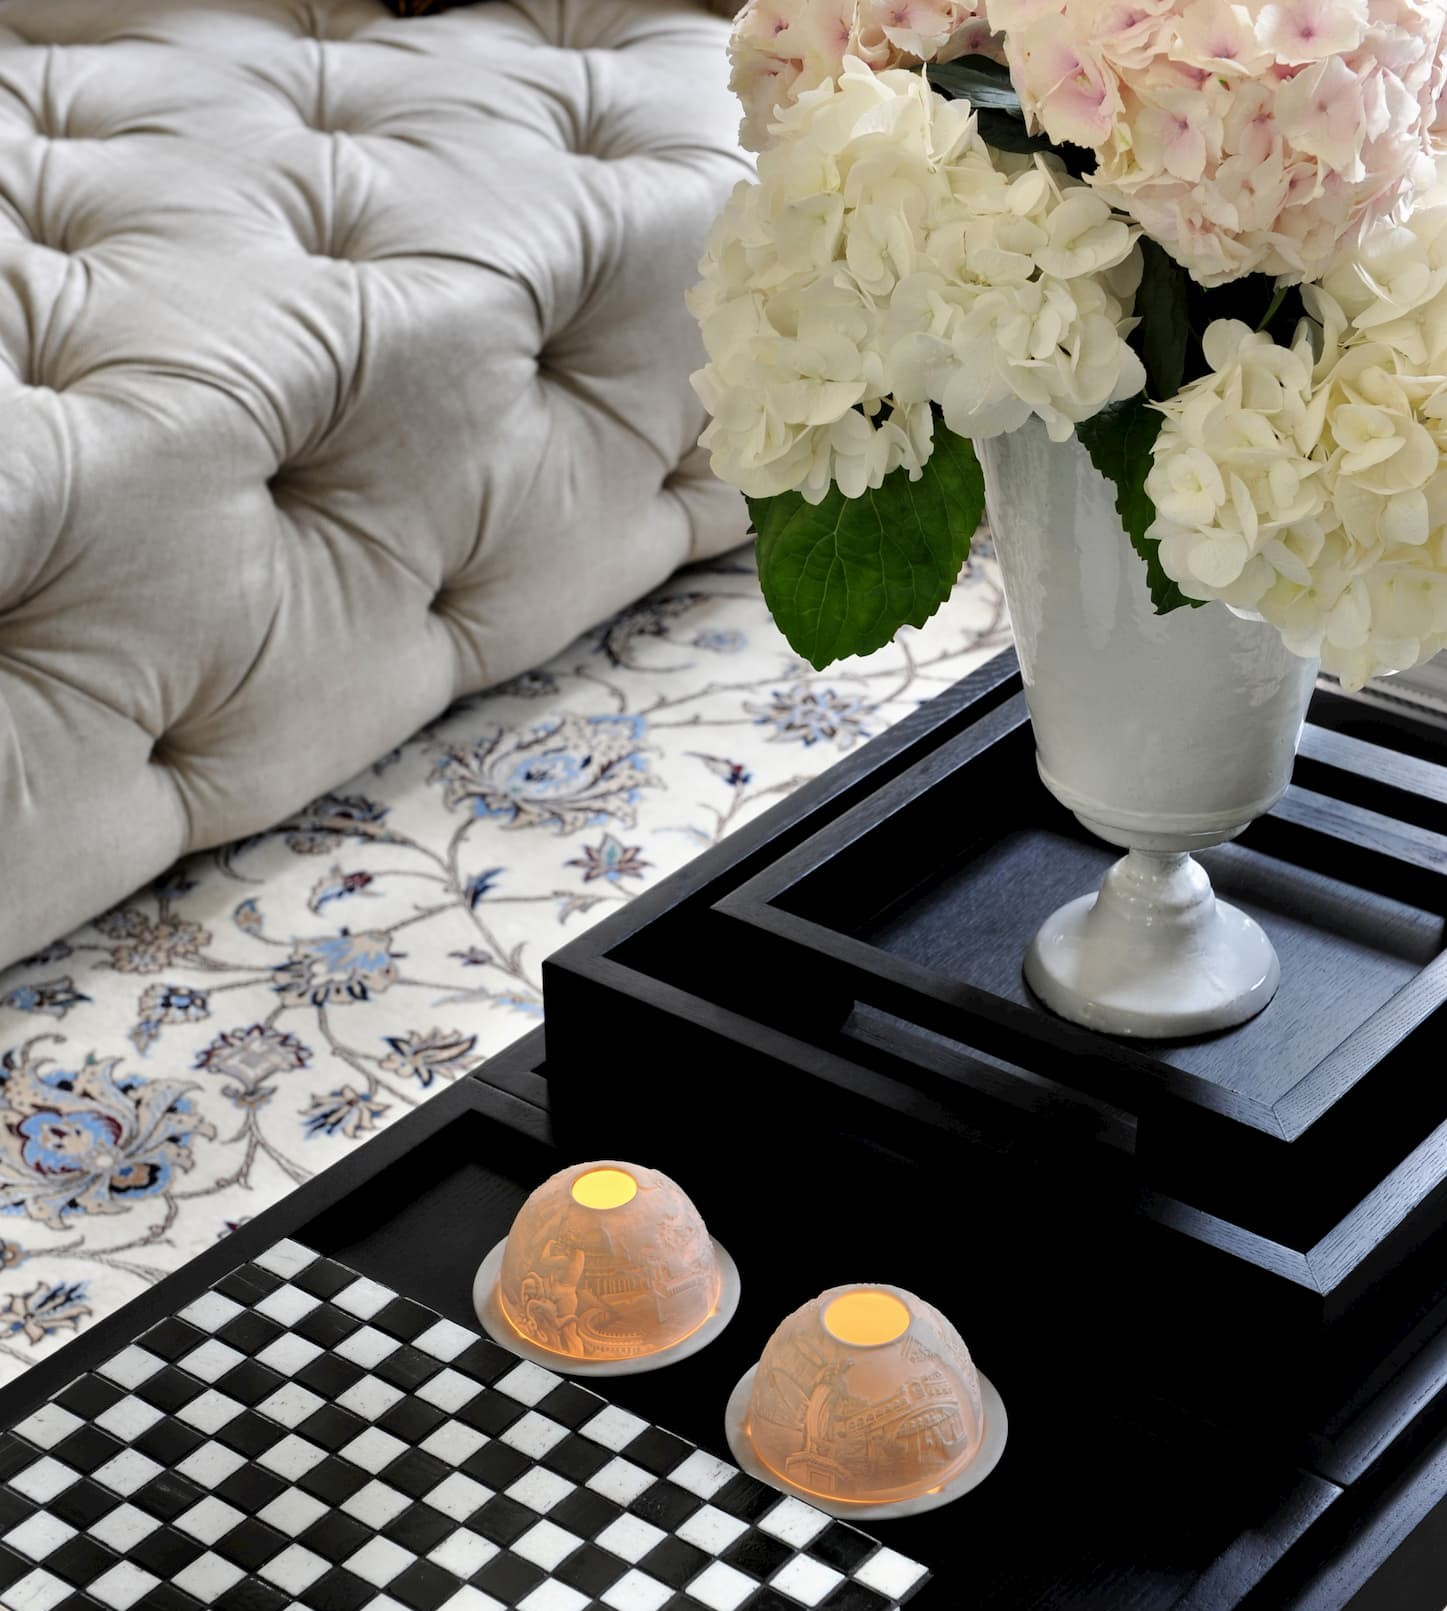 White velvet capitonnage sofa on Chinese silk carpet of light gray and white next to a dark brown wooden table with a white flower vase.